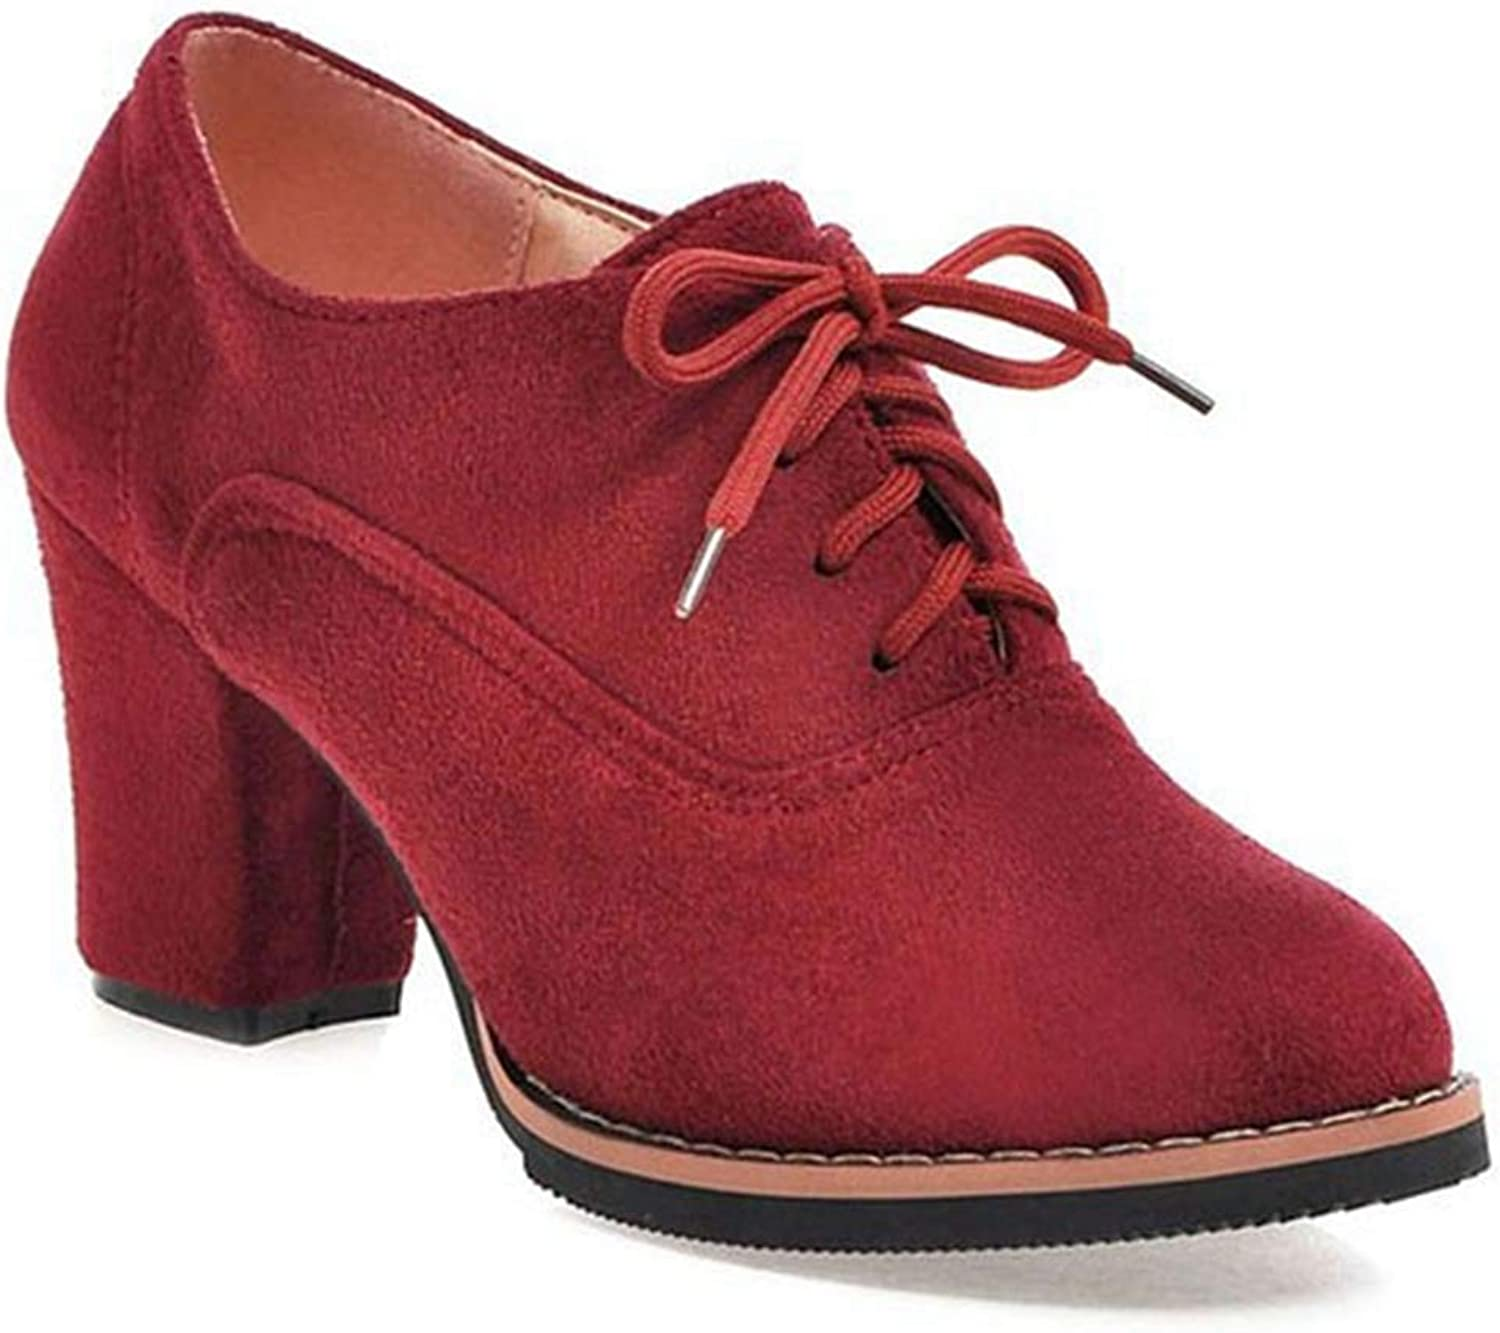 Fashion shoesbox Women's Casual Platform Lace Up Half Ankle Boots Suede Chunky Block Heel Bootie Oxfords Short Boot